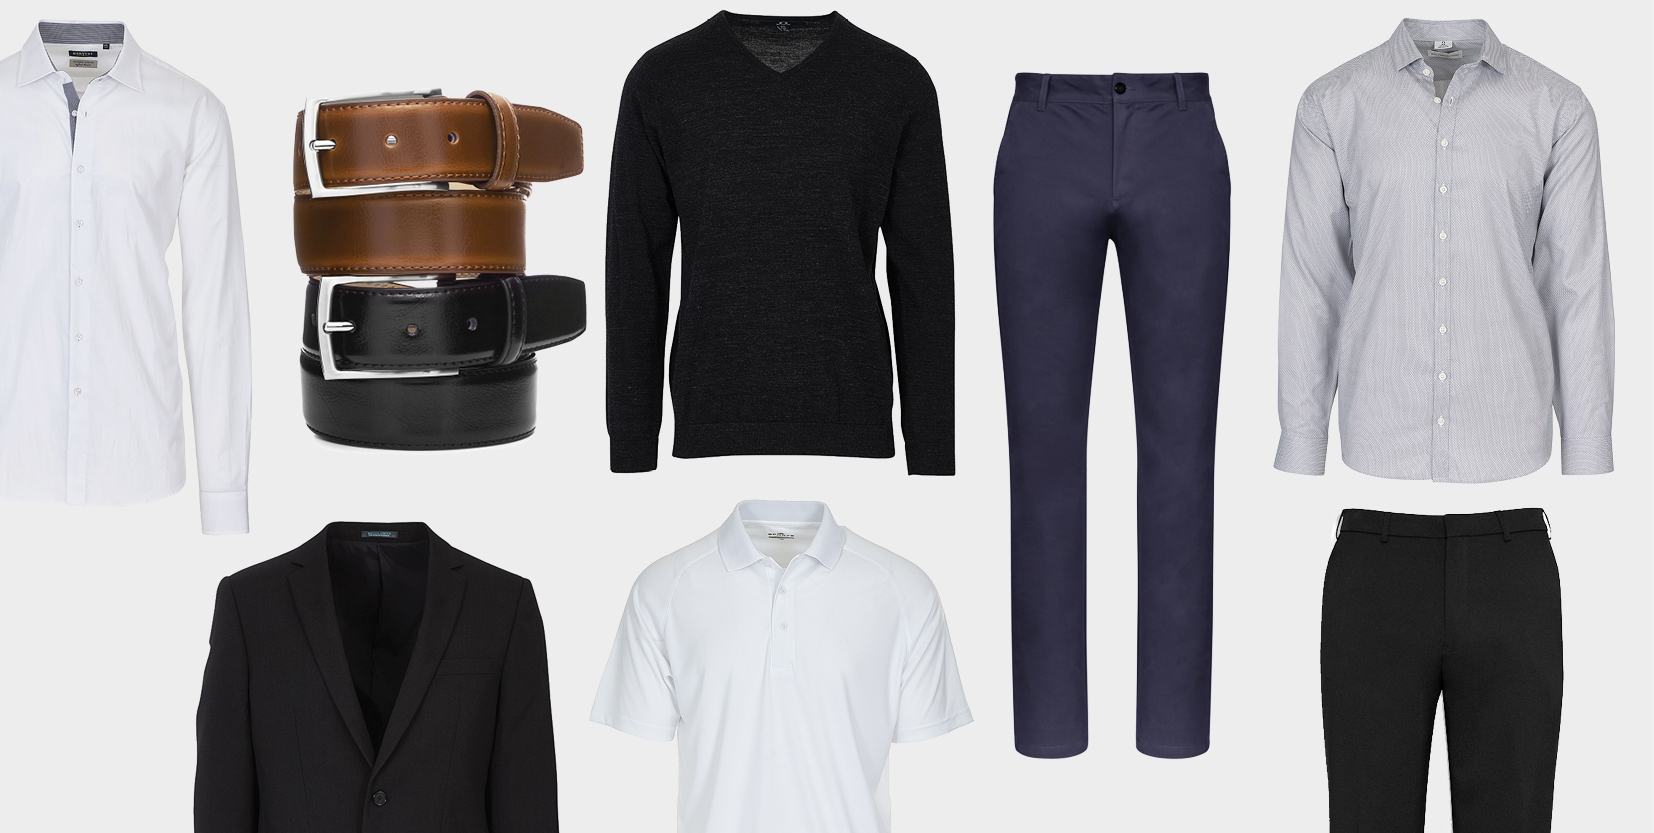 Stylish Corporate Uniforms With Less than 10 Items